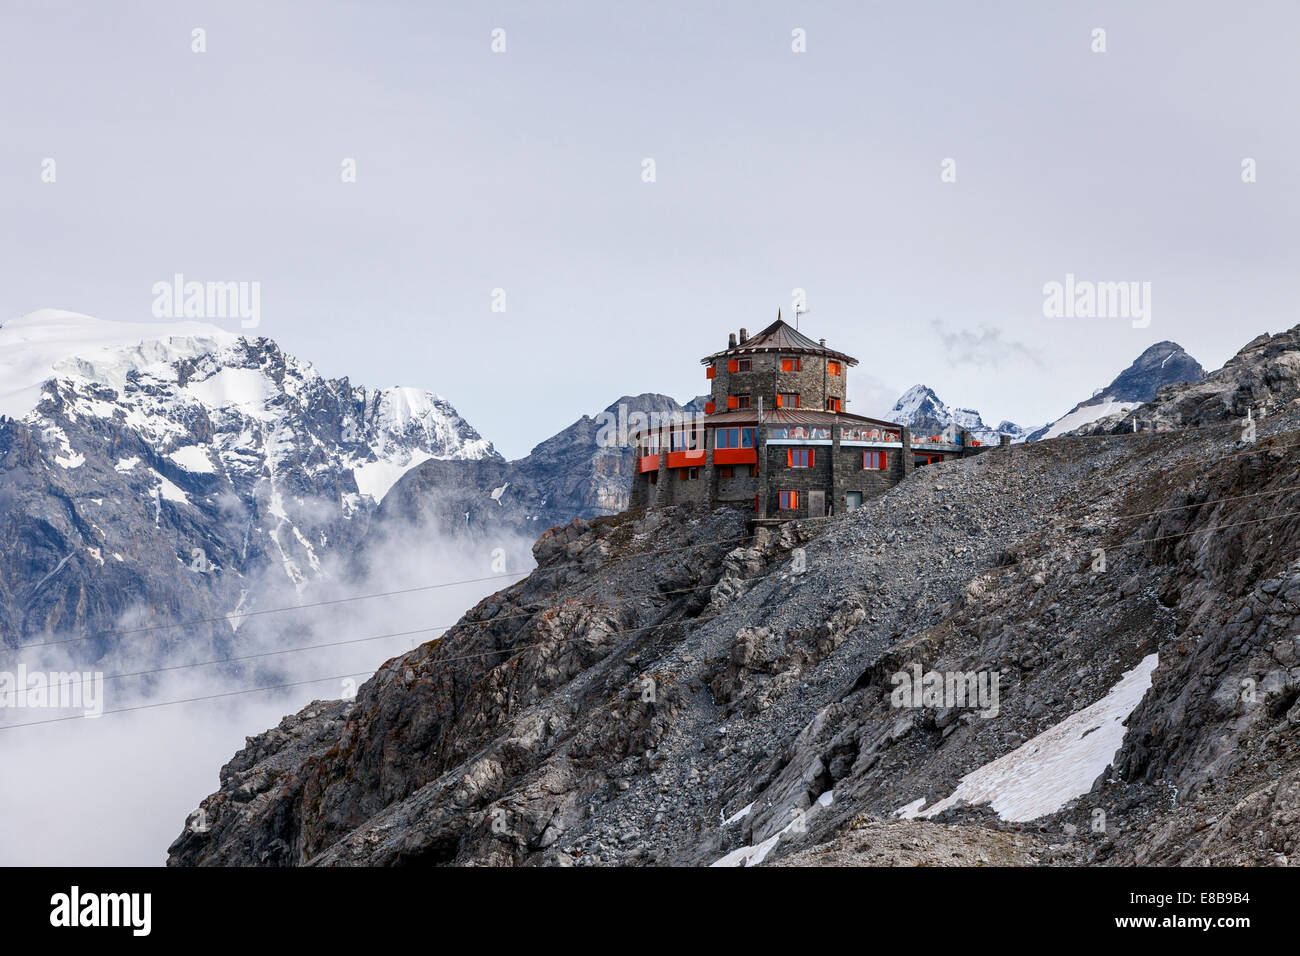 Tibet hotel at the top of the Stelvio Pass, South Tyrol, Italy - Stock Image